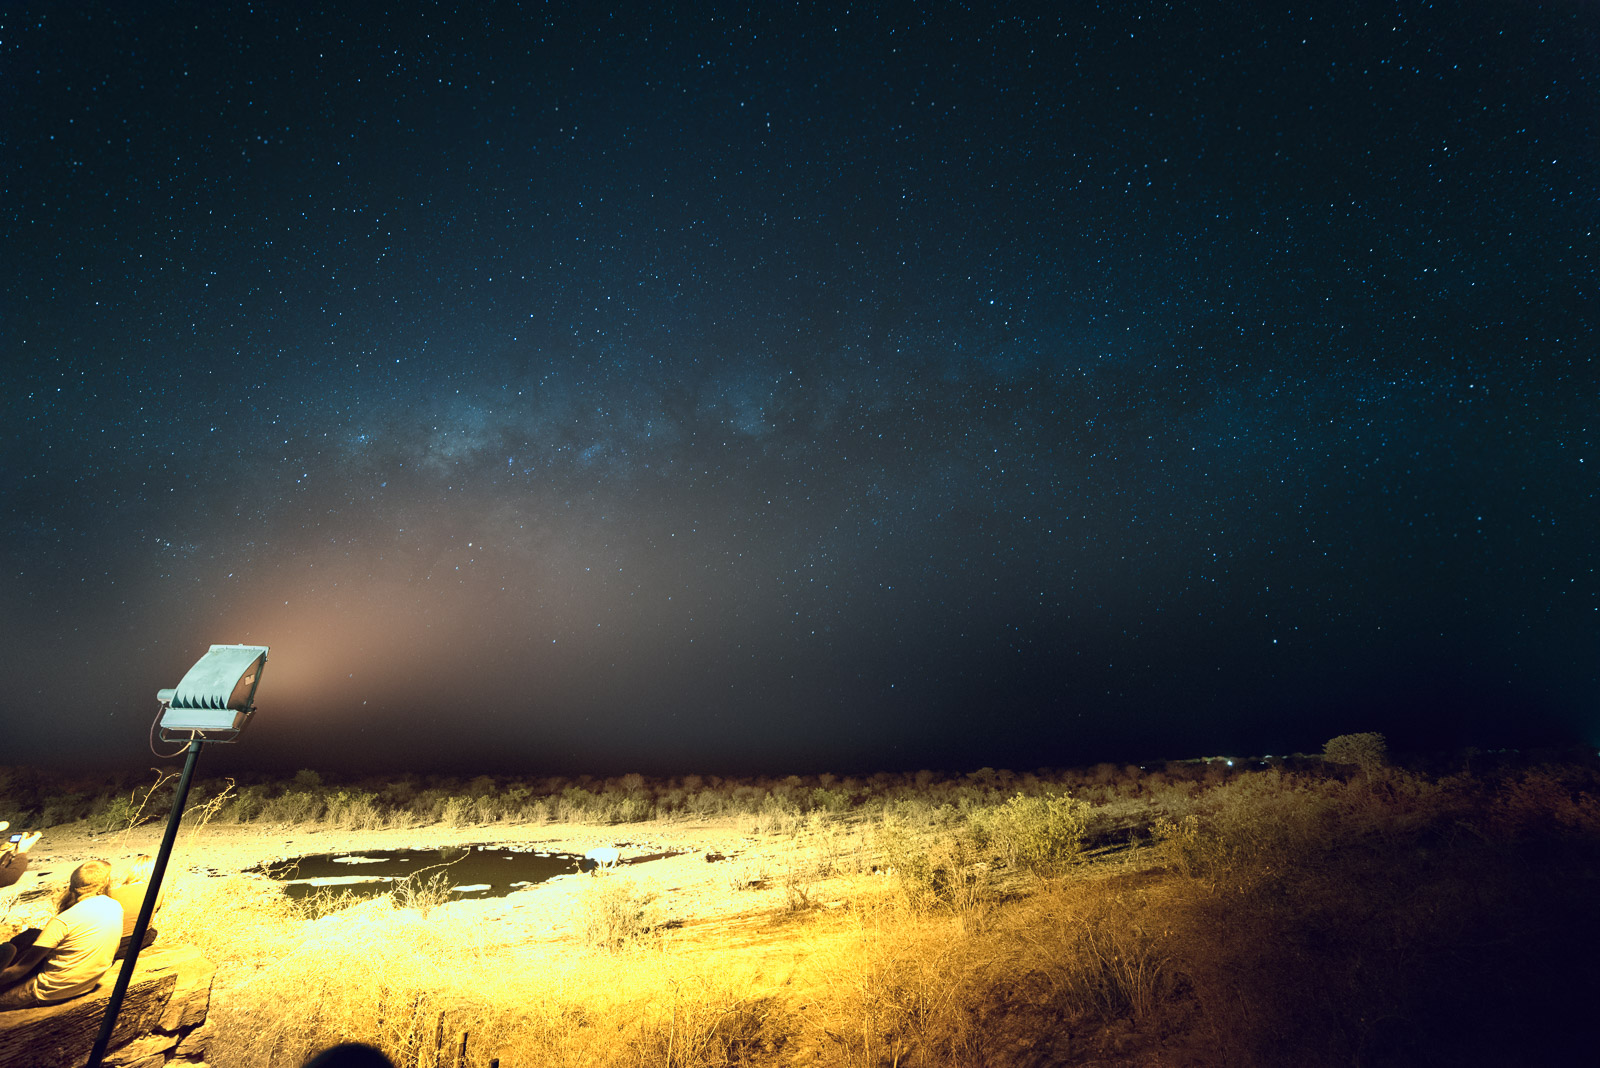 Milky Way over the waterhole at Halali camp inside Etosha National Park